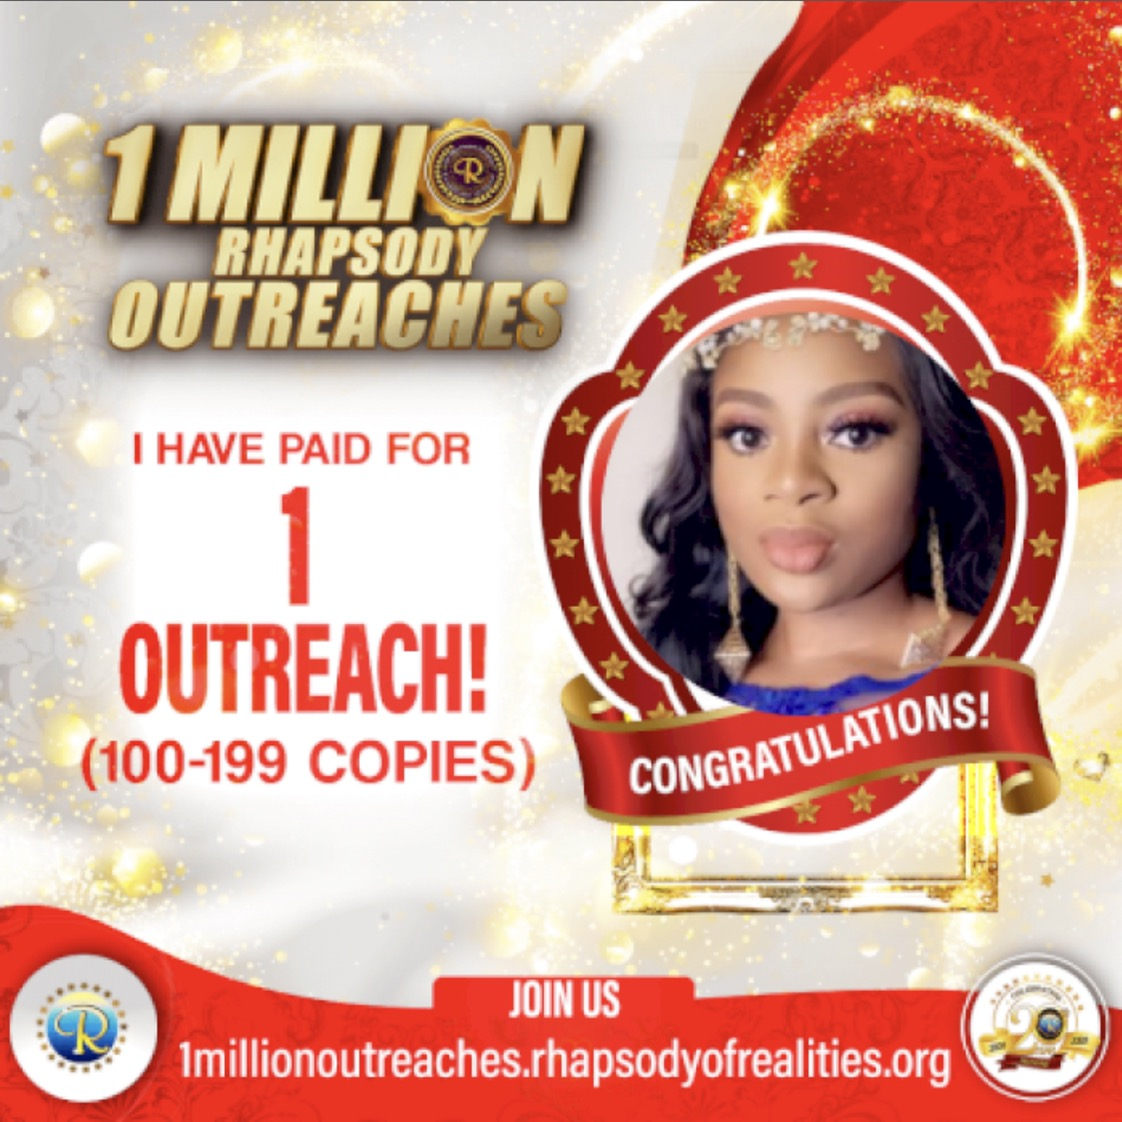 One outreach completed more to